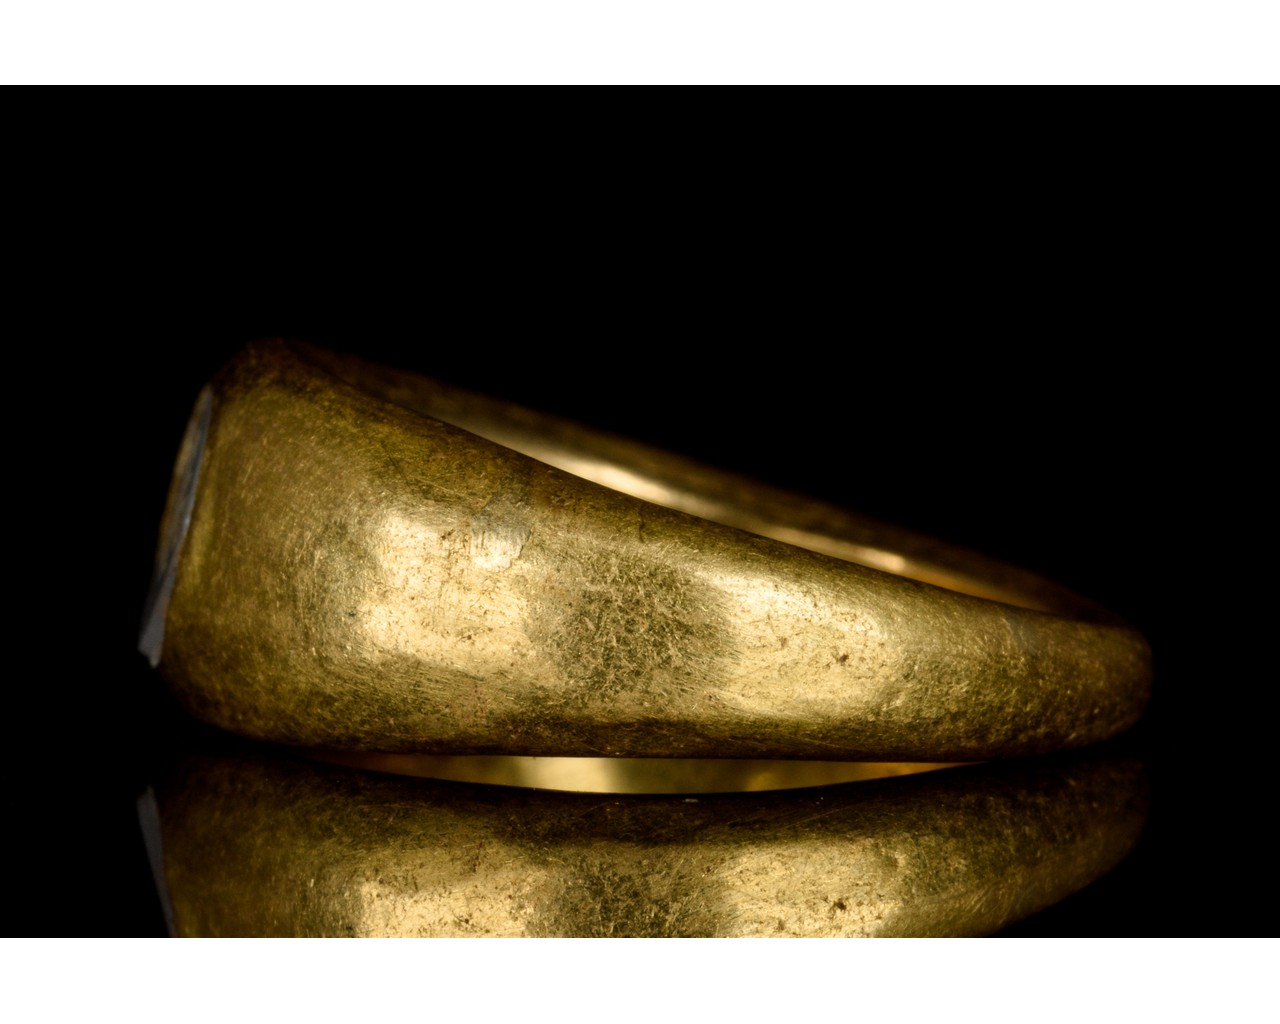 ROMAN GOLD AND CHALCEDONY INTAGLIO RING WITH SYMBOL - FULL ANALYSIS - Image 3 of 9